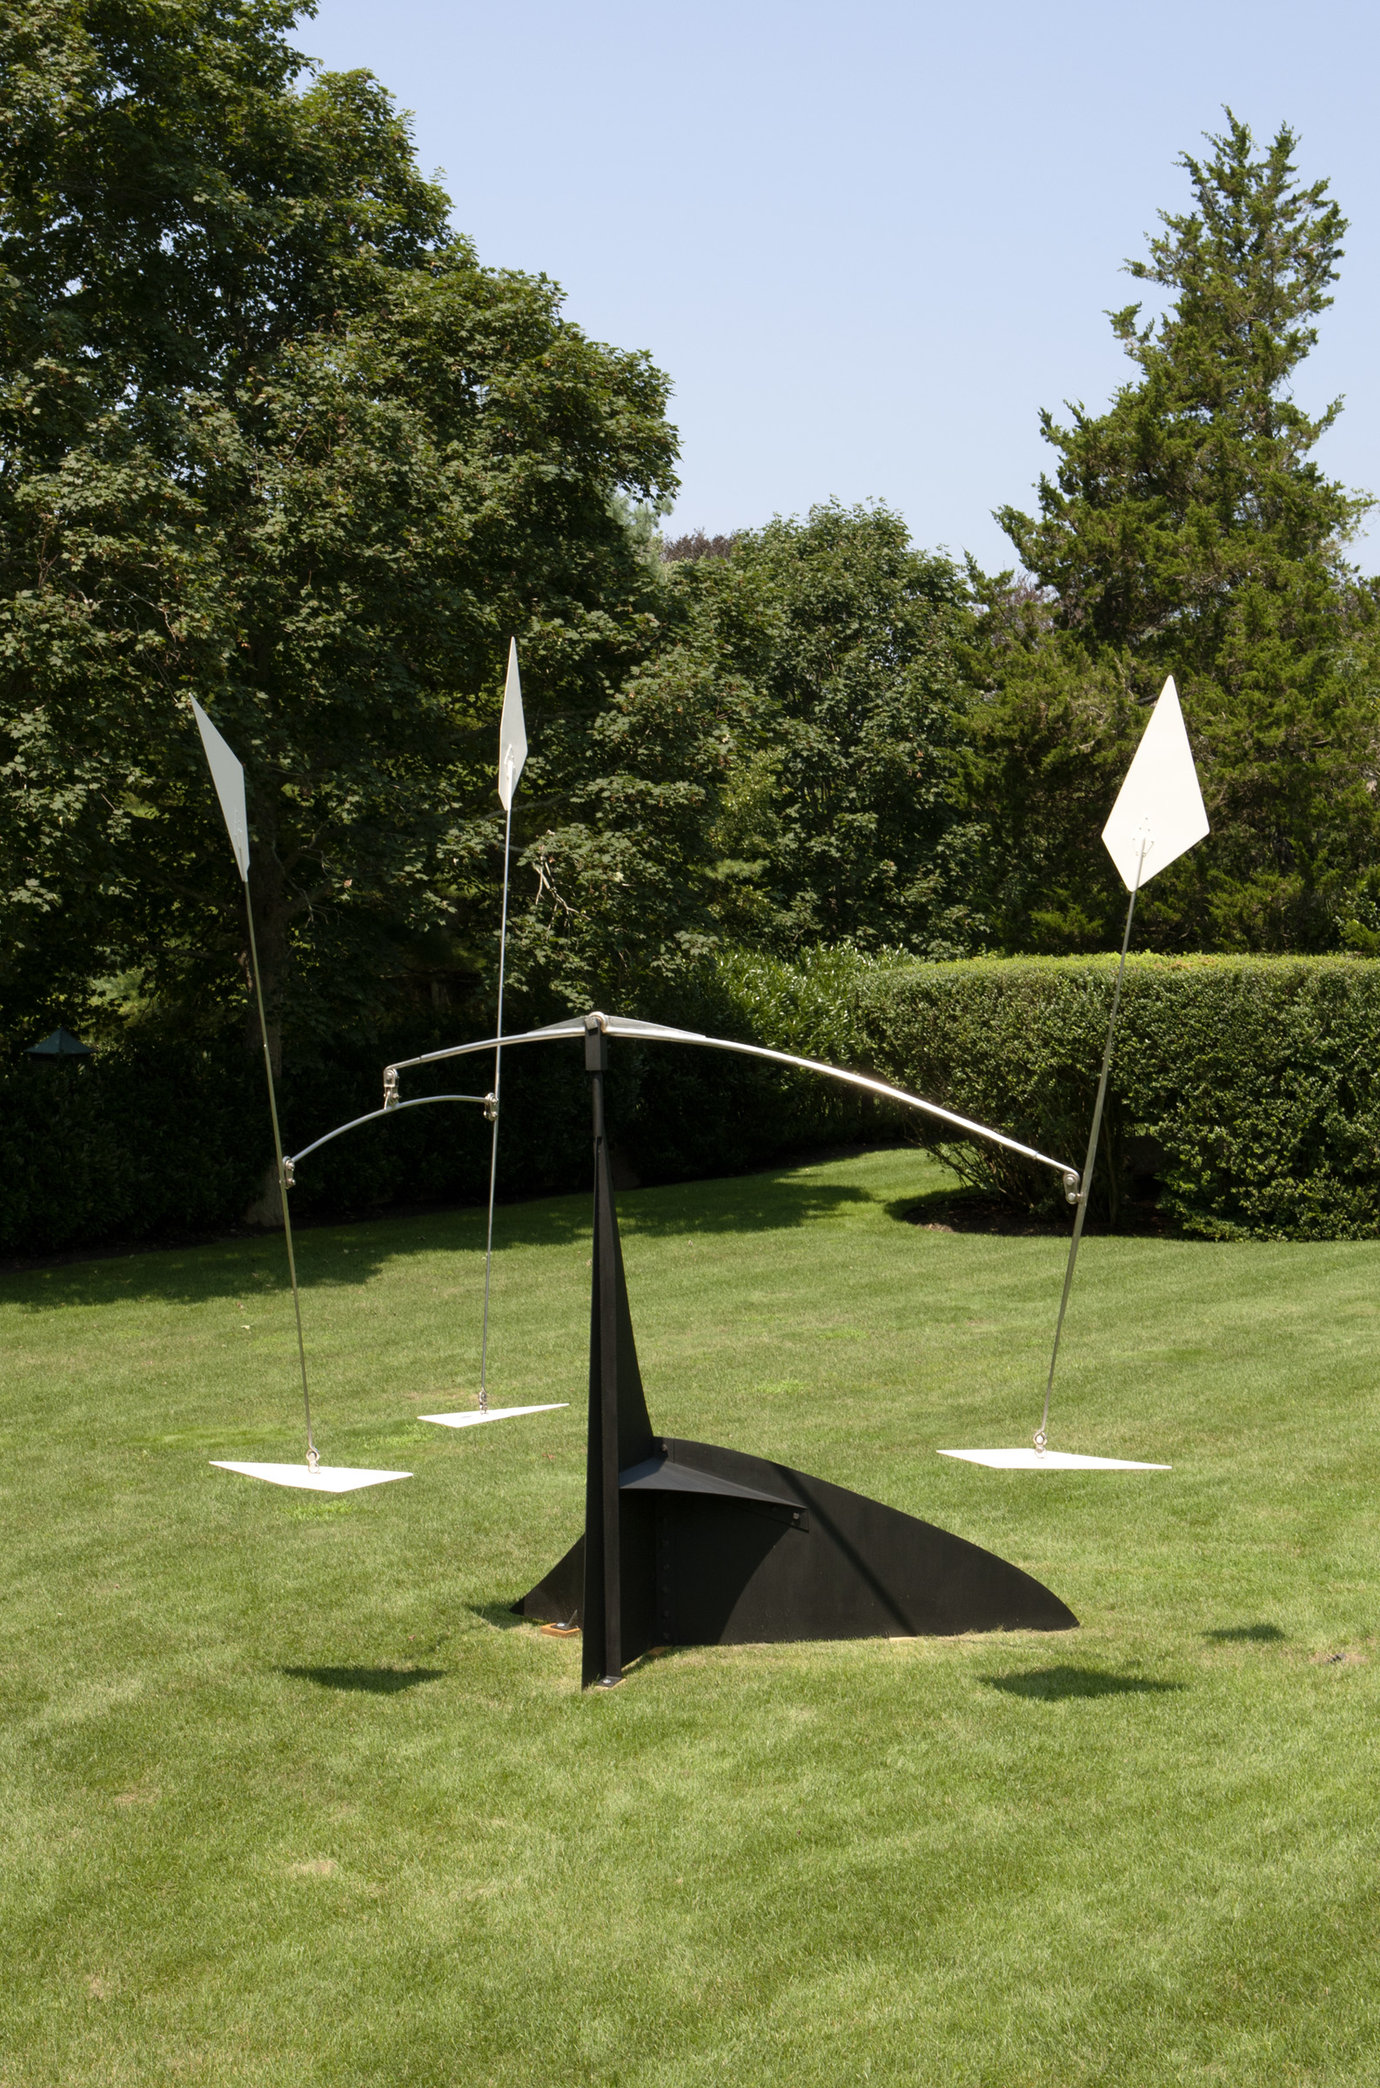 ". Sheet metal and paint, 16' 6"" x 14' 1"" x 9' 9"" (502.9 cm x 429.3 cm x 297.2 cm)."